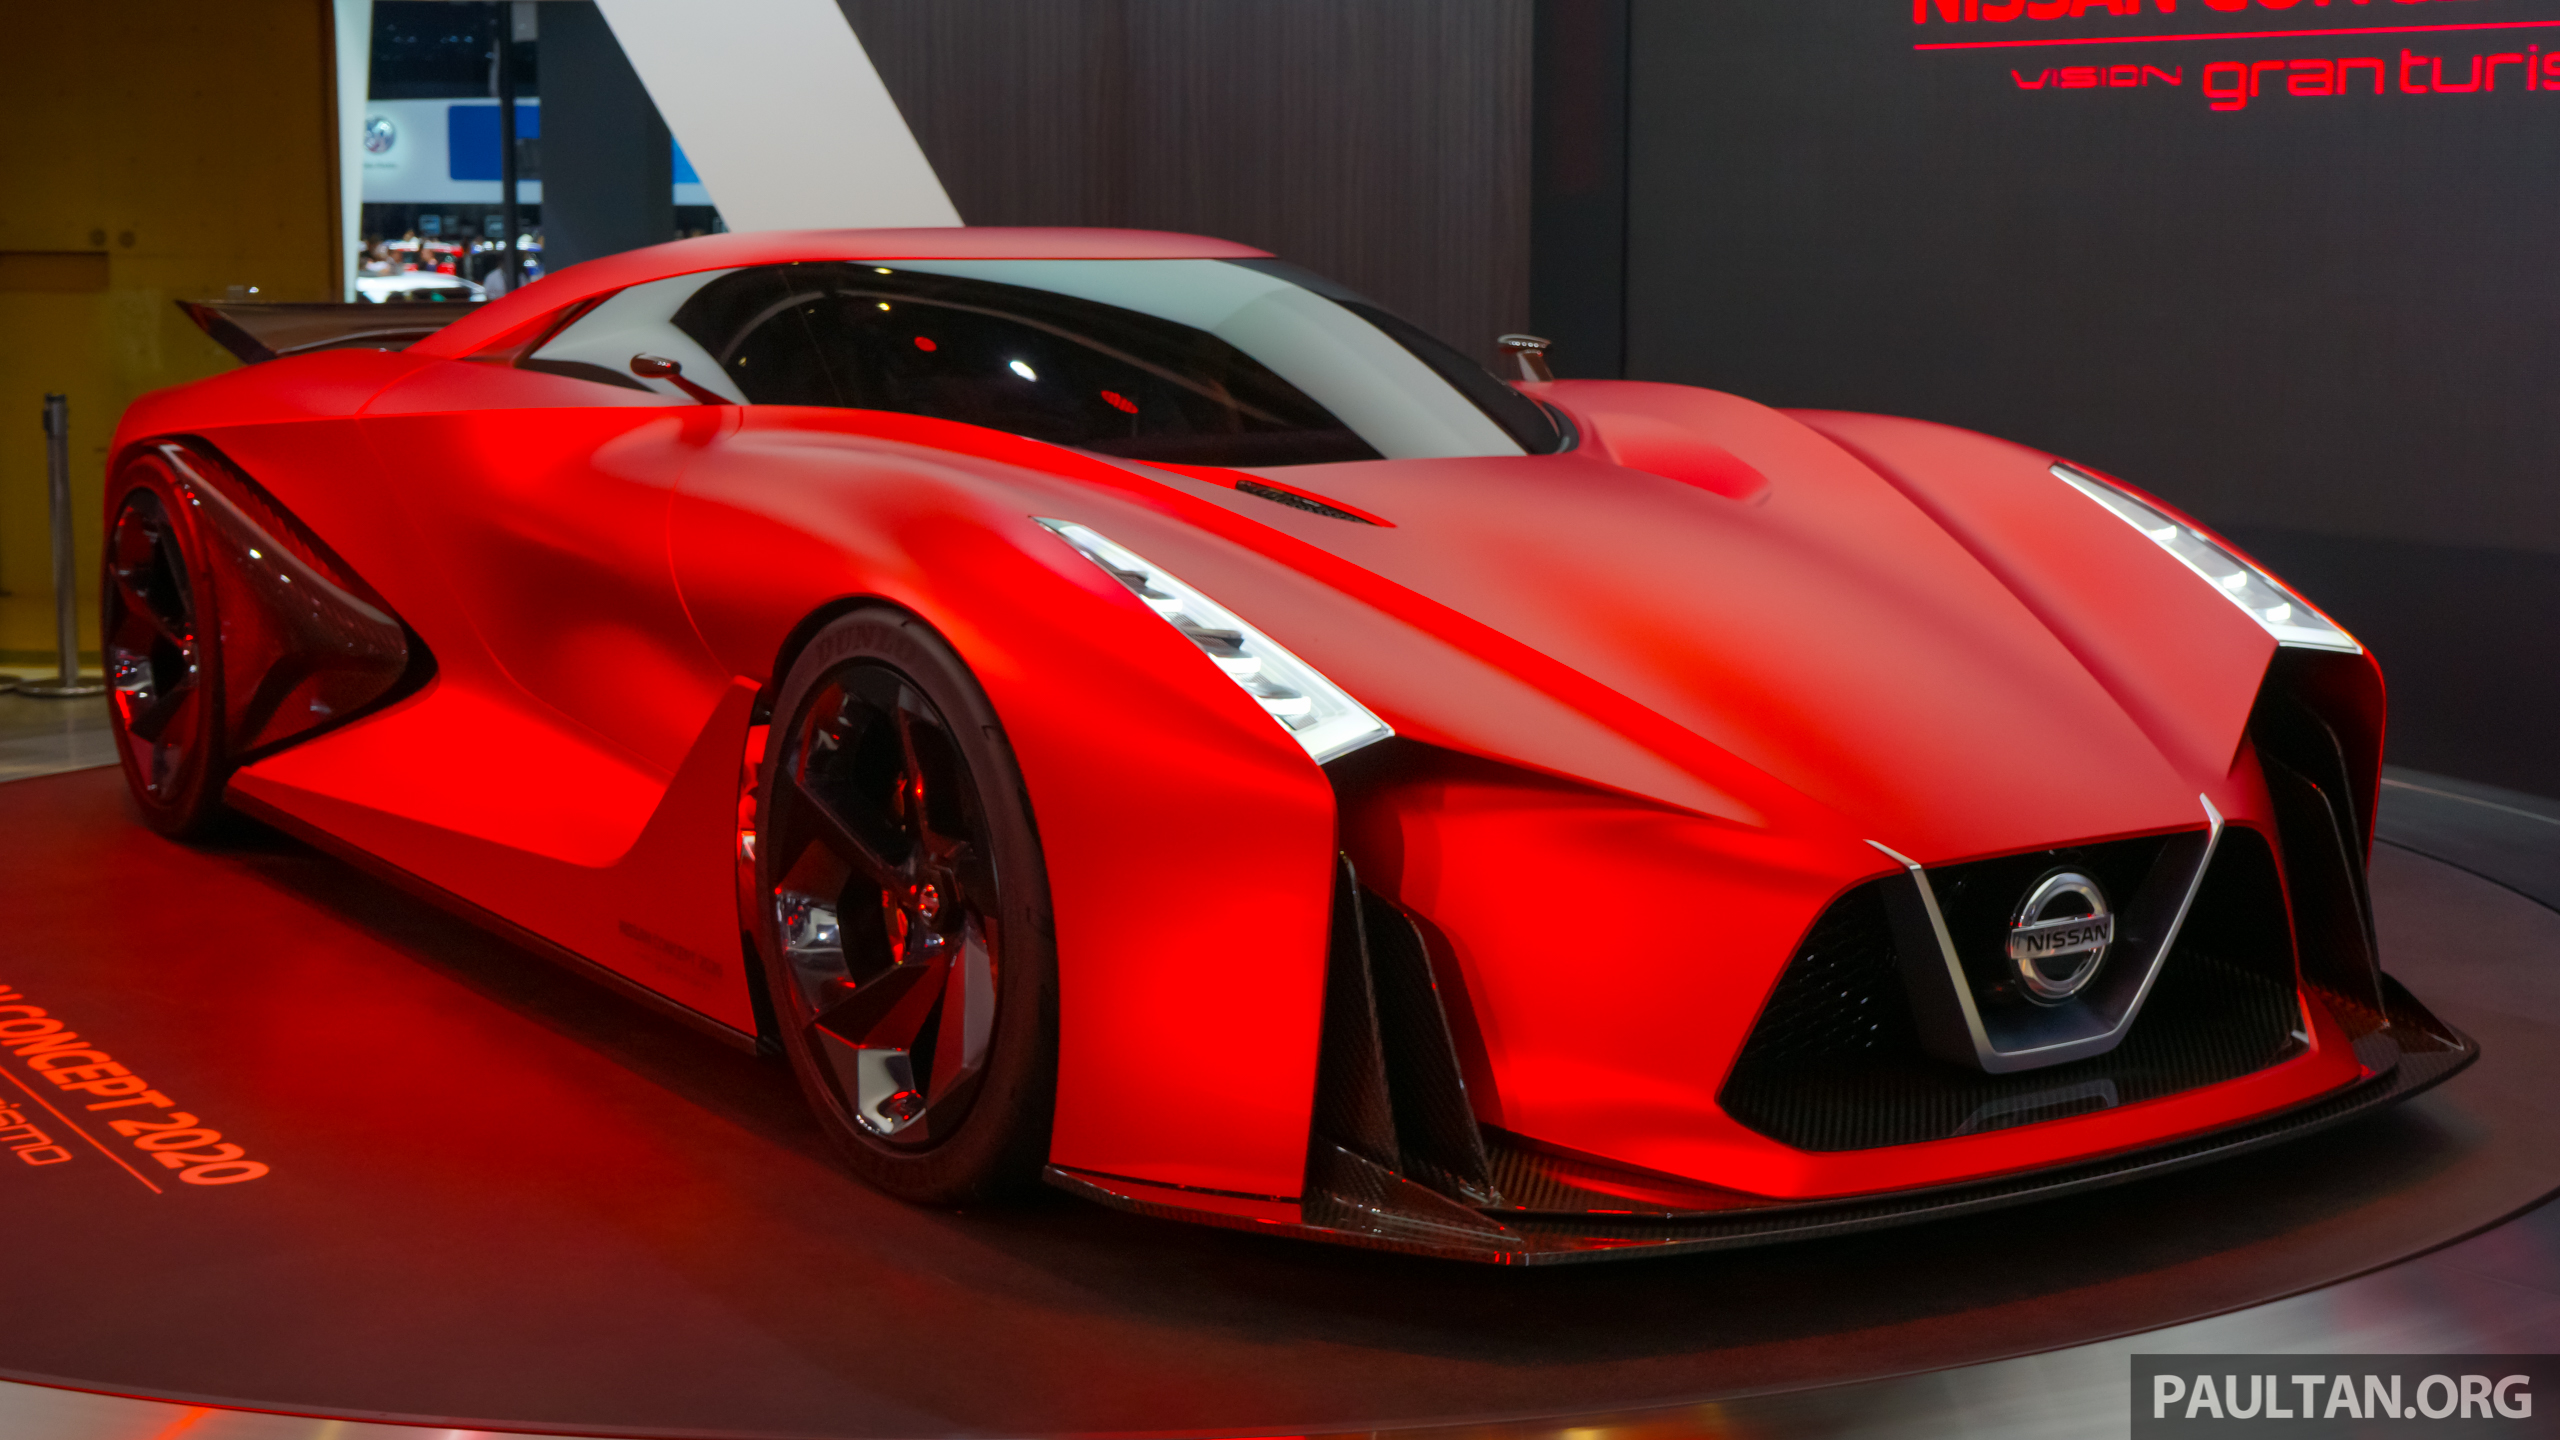 tokyo 2015 nissan concept 2020 vision gran turismo. Black Bedroom Furniture Sets. Home Design Ideas